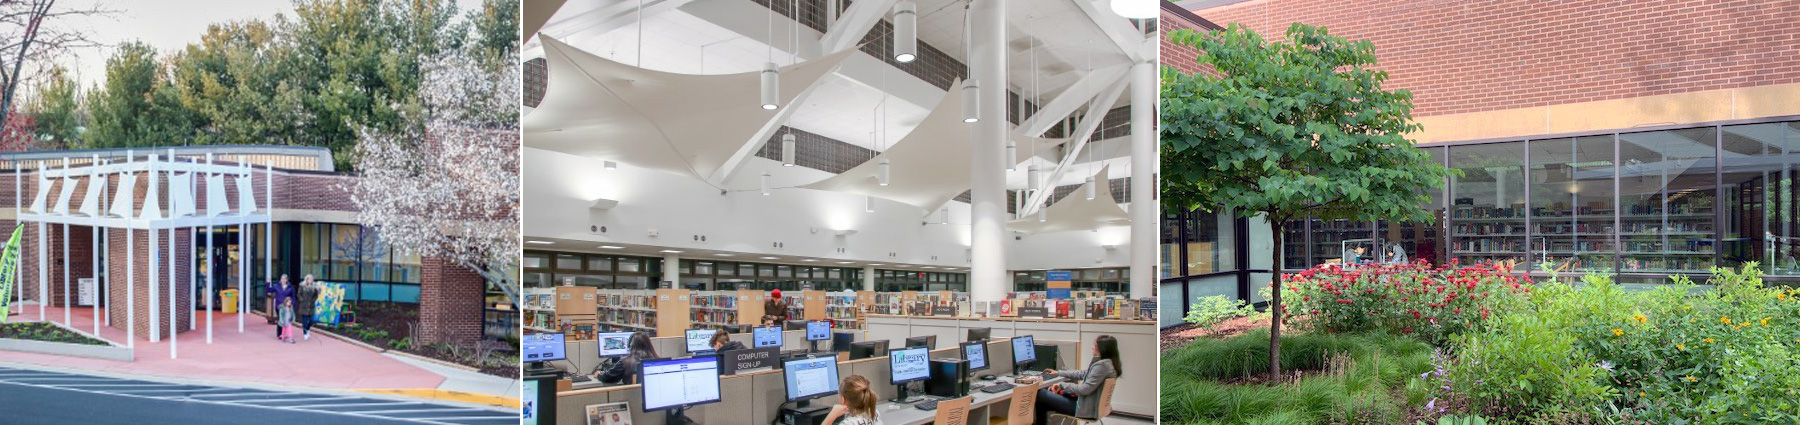 Tysons-Pimmit Regional Library